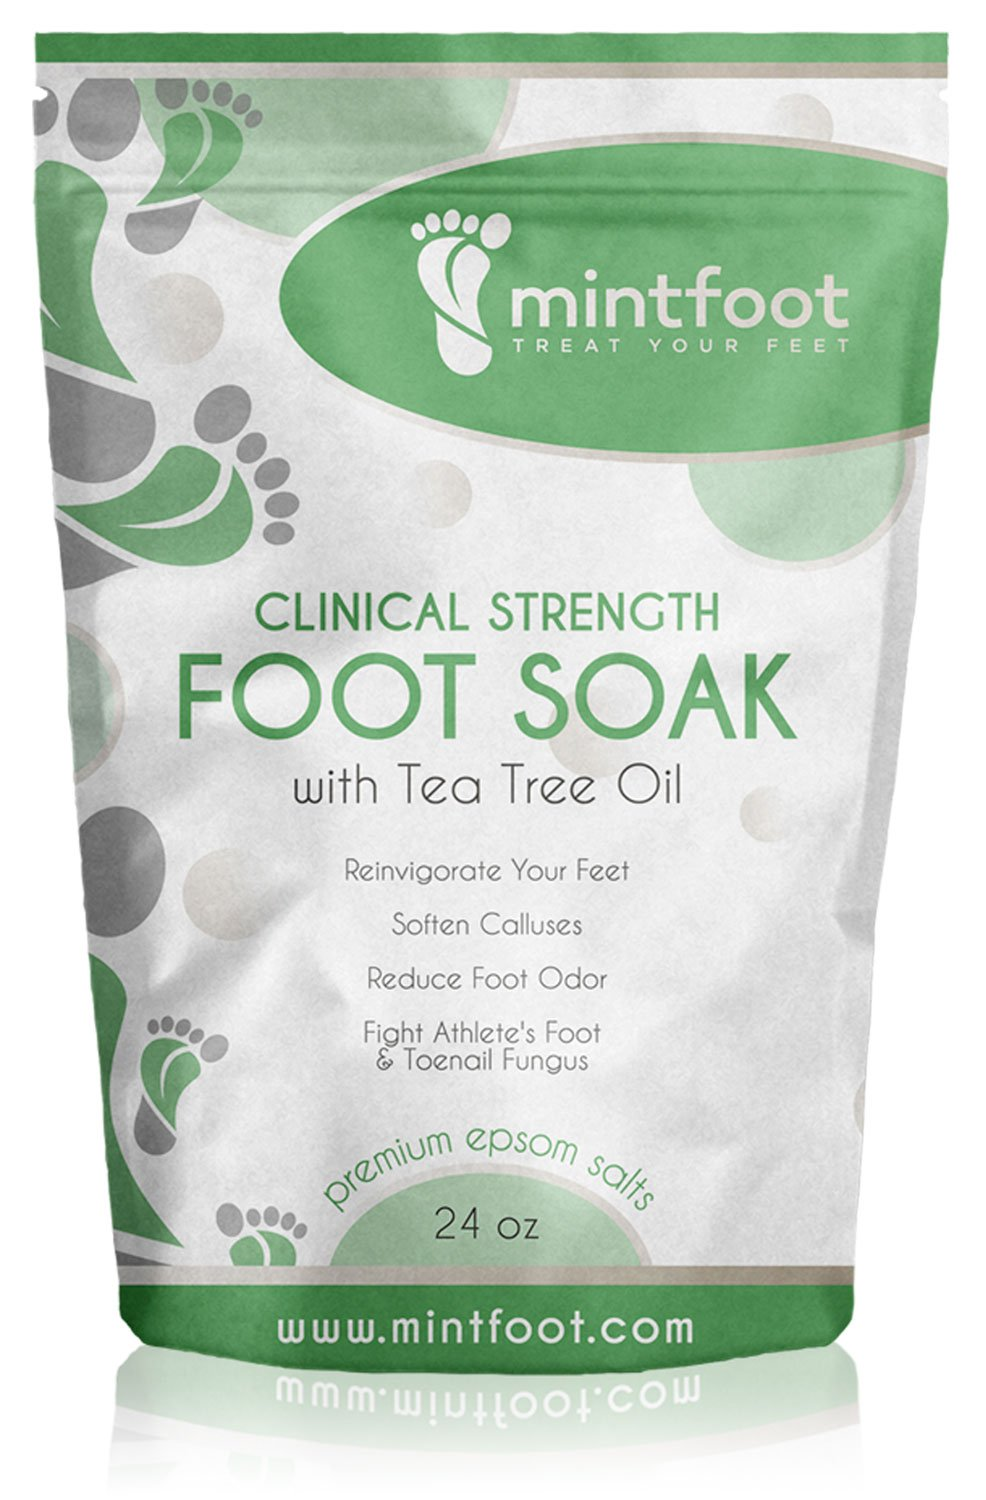 Mintfoot Clinical Strength Foot Soak